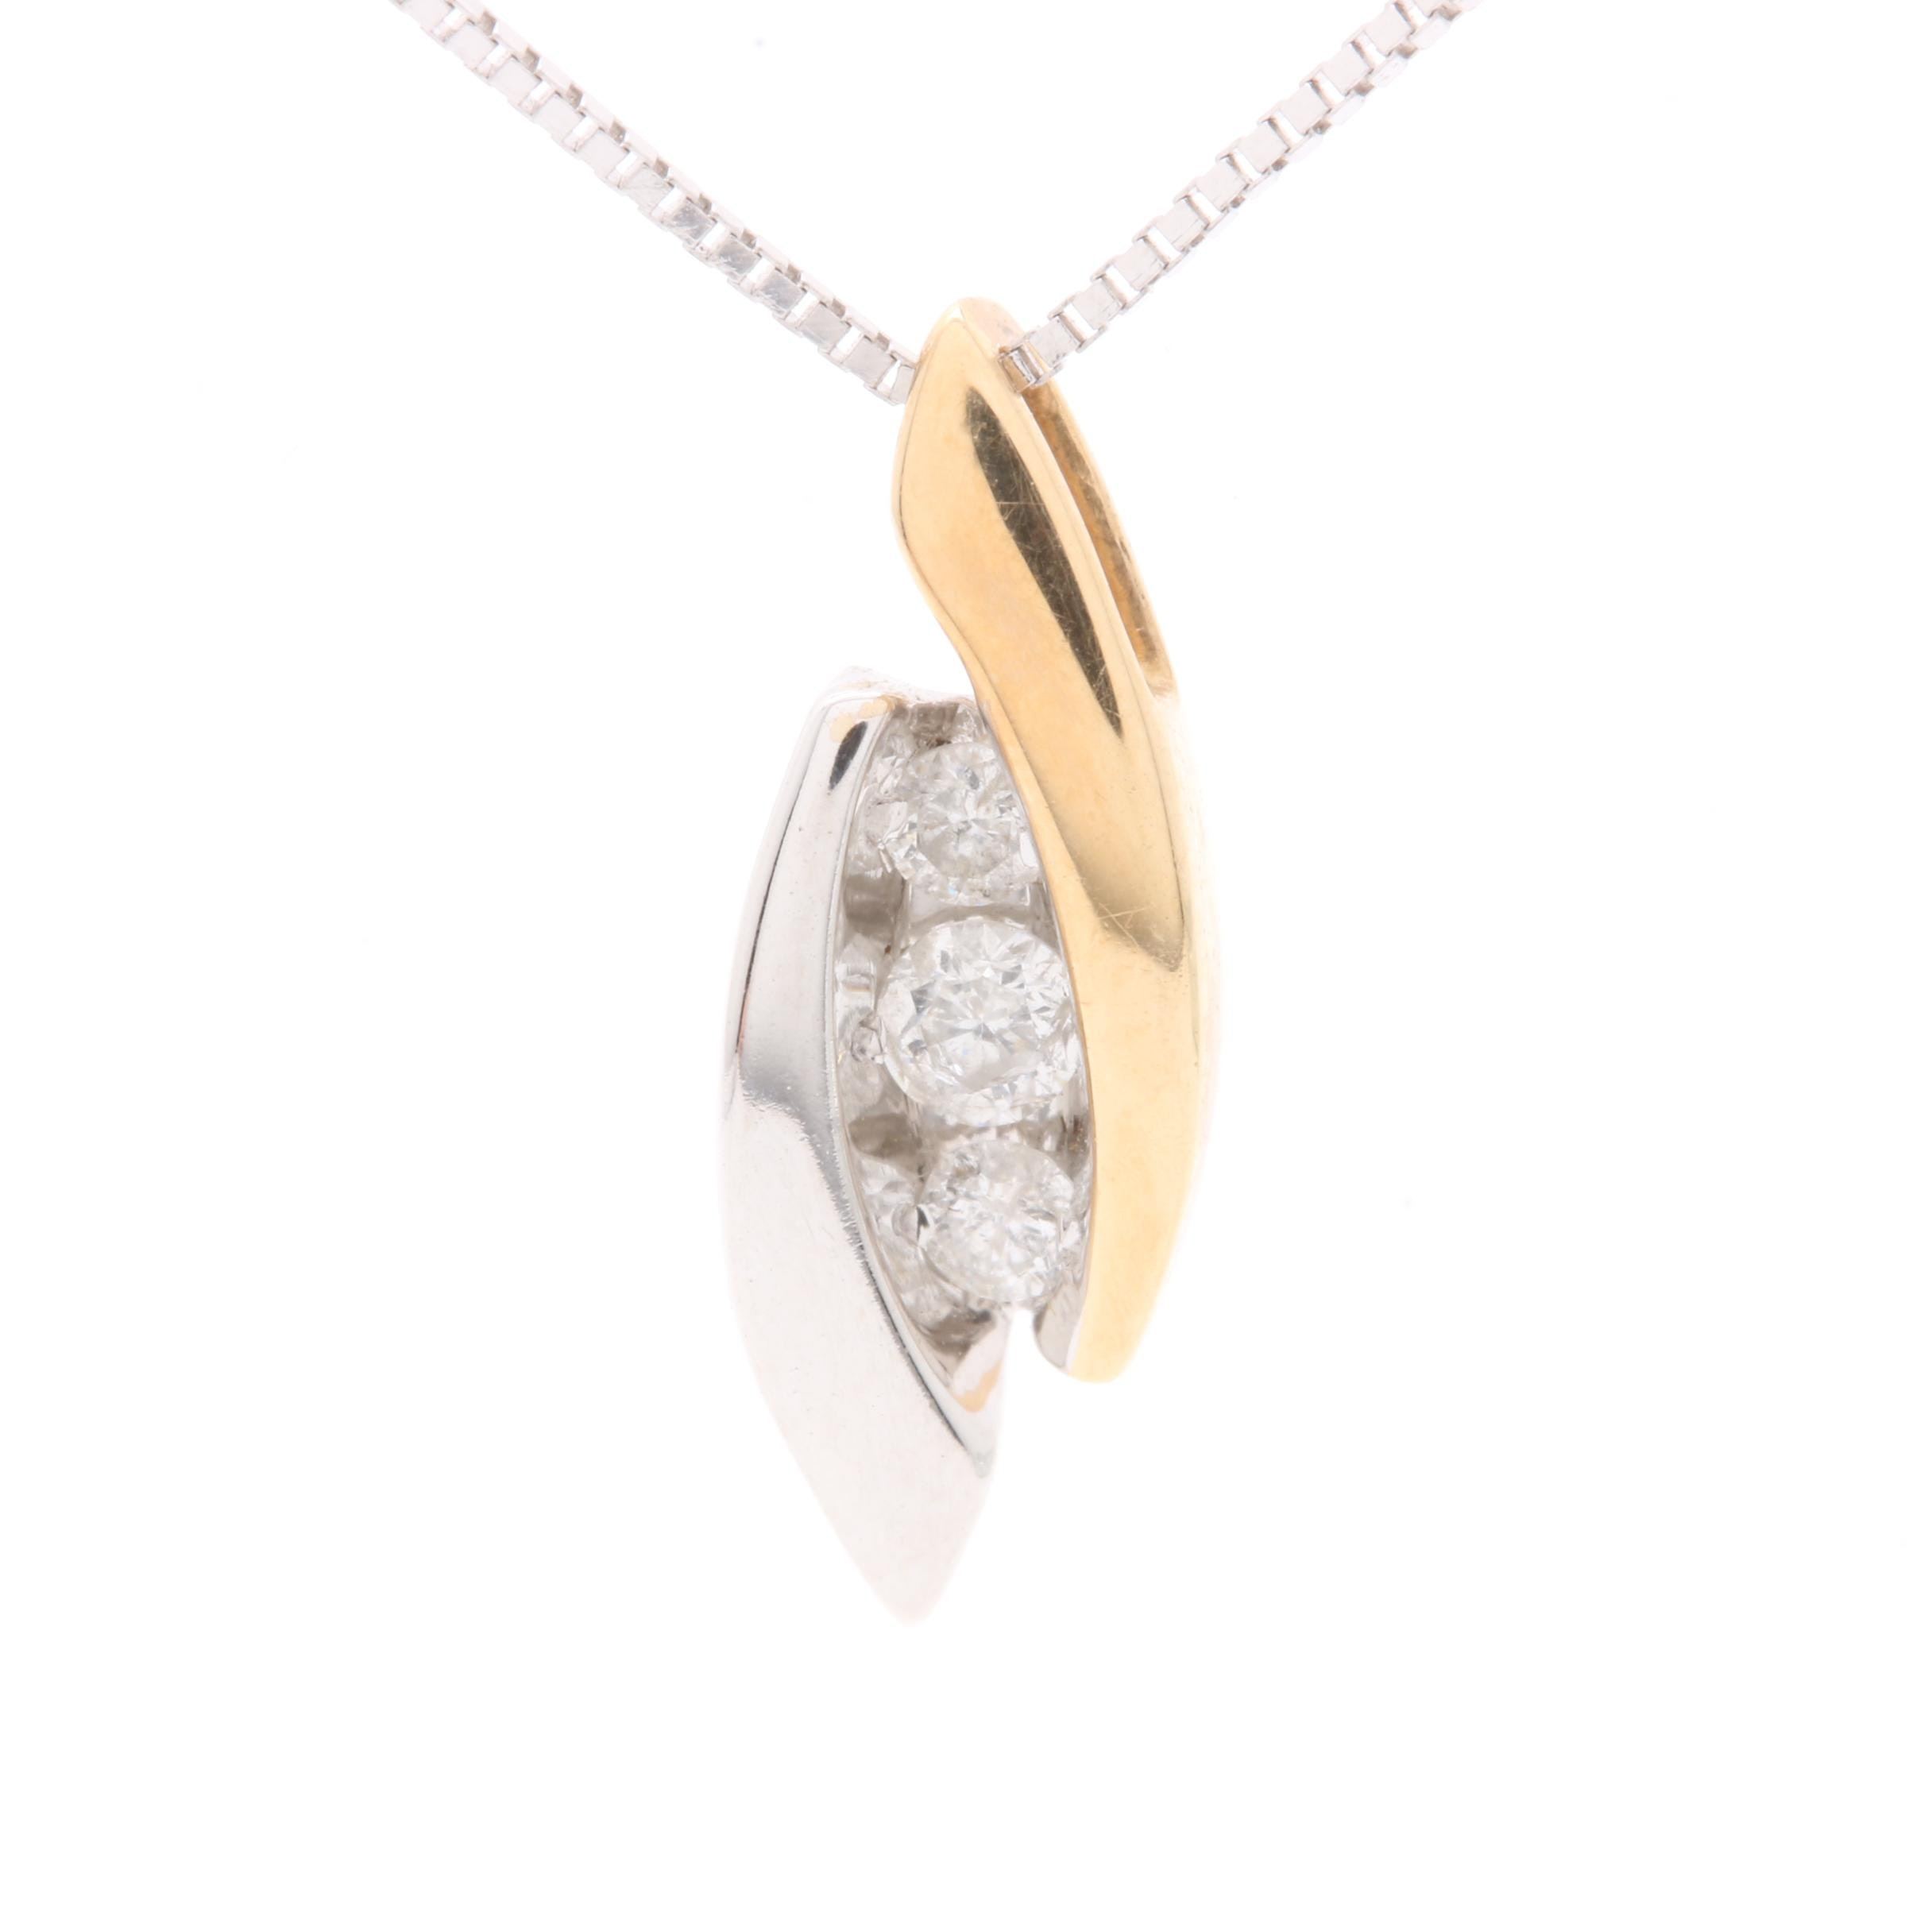 14K White Gold Diamond Pendant Necklace with 14K Yellow Gold Accent